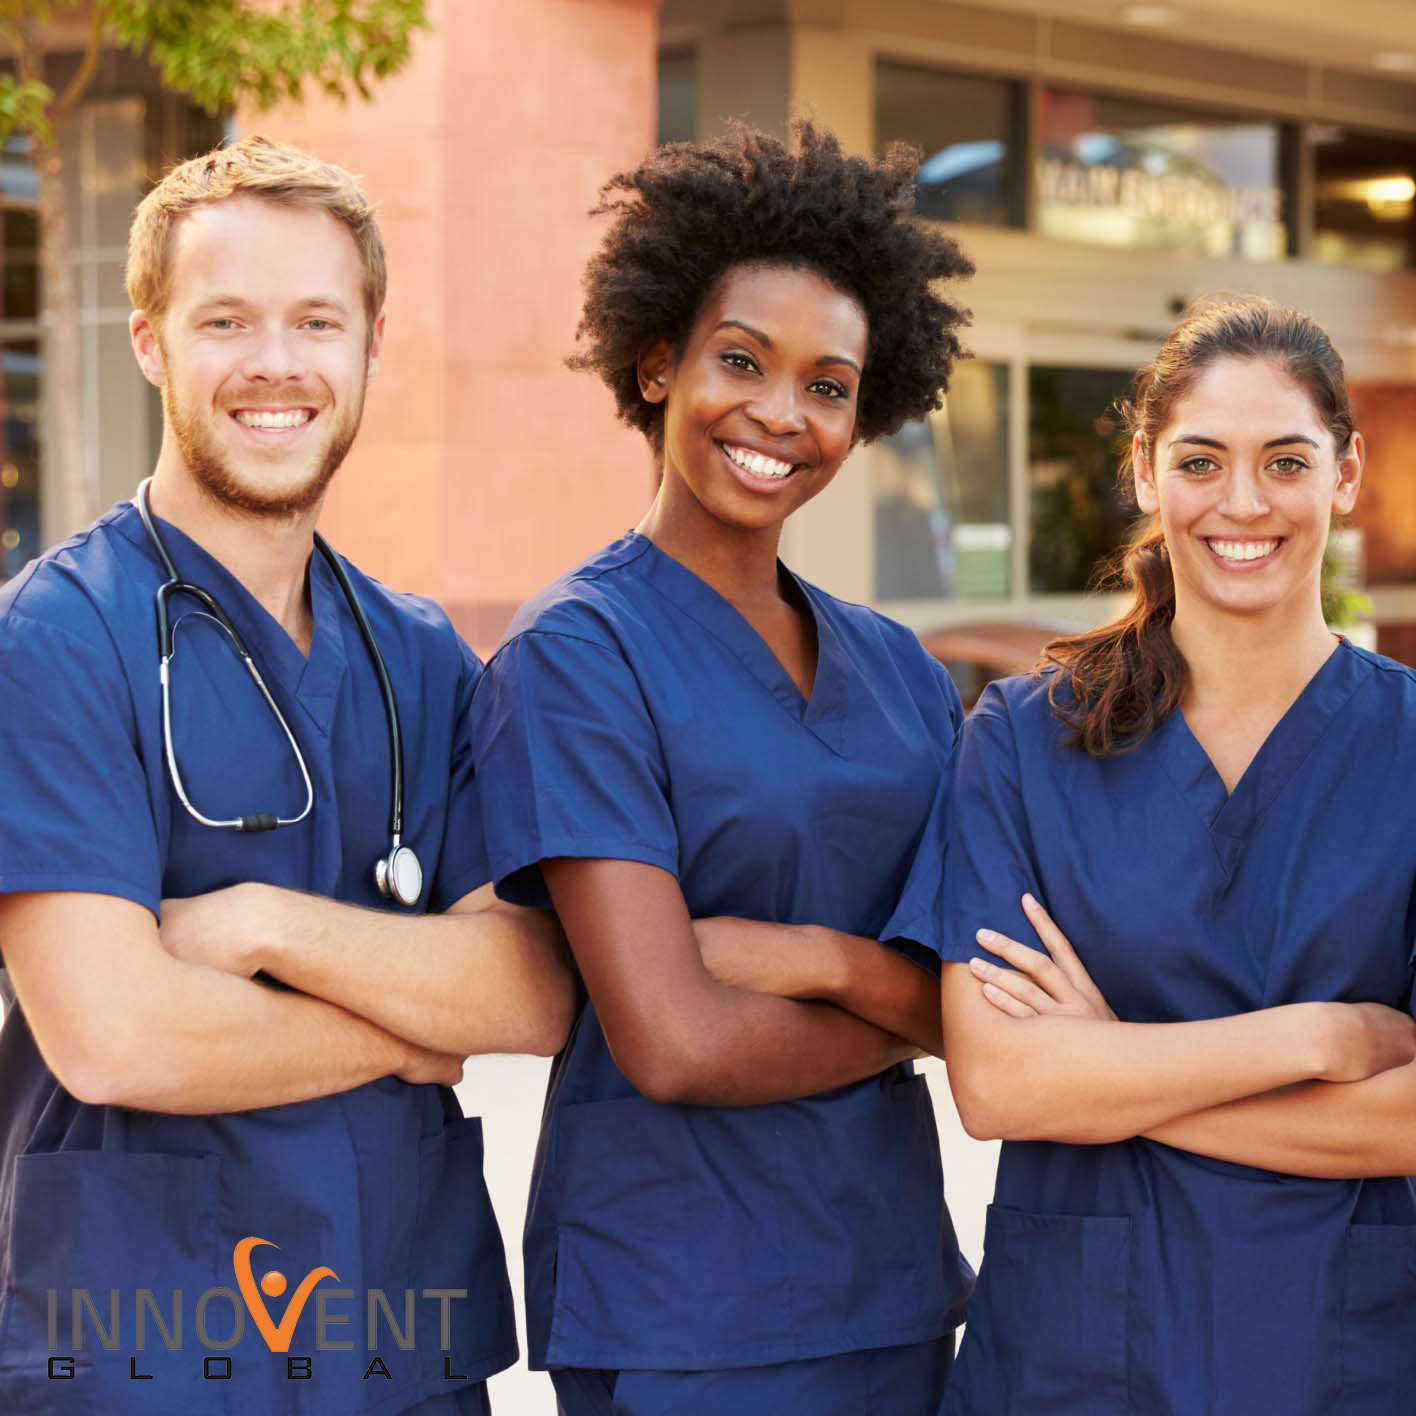 two-nurses-together